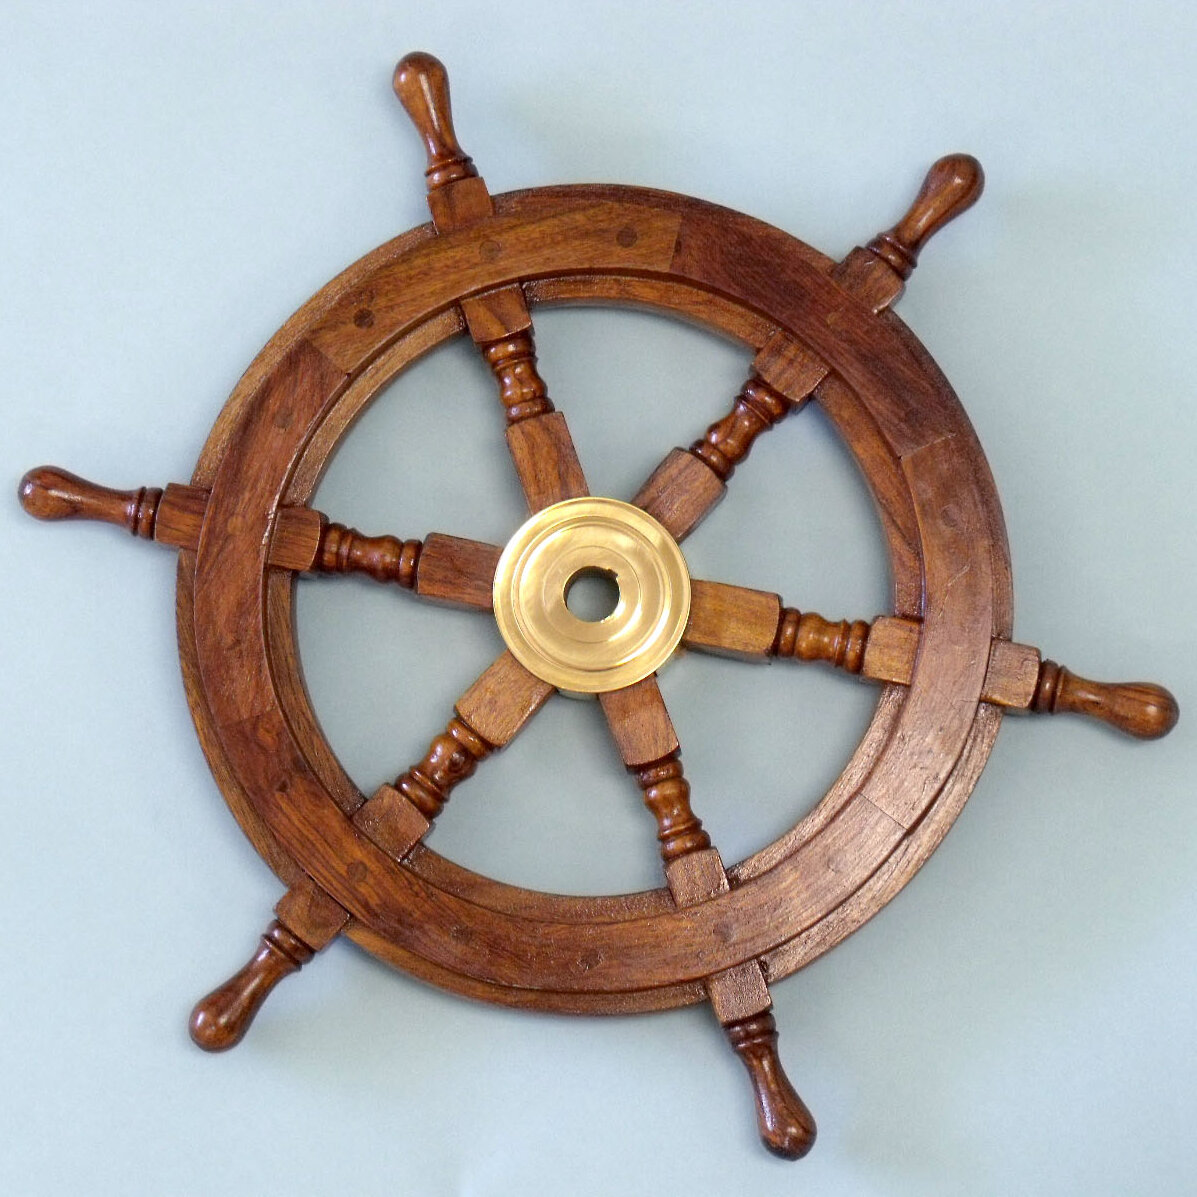 Nautical Wheel Decor: Handcrafted Model Ships Deluxe Class Ship Wheel Wall Décor